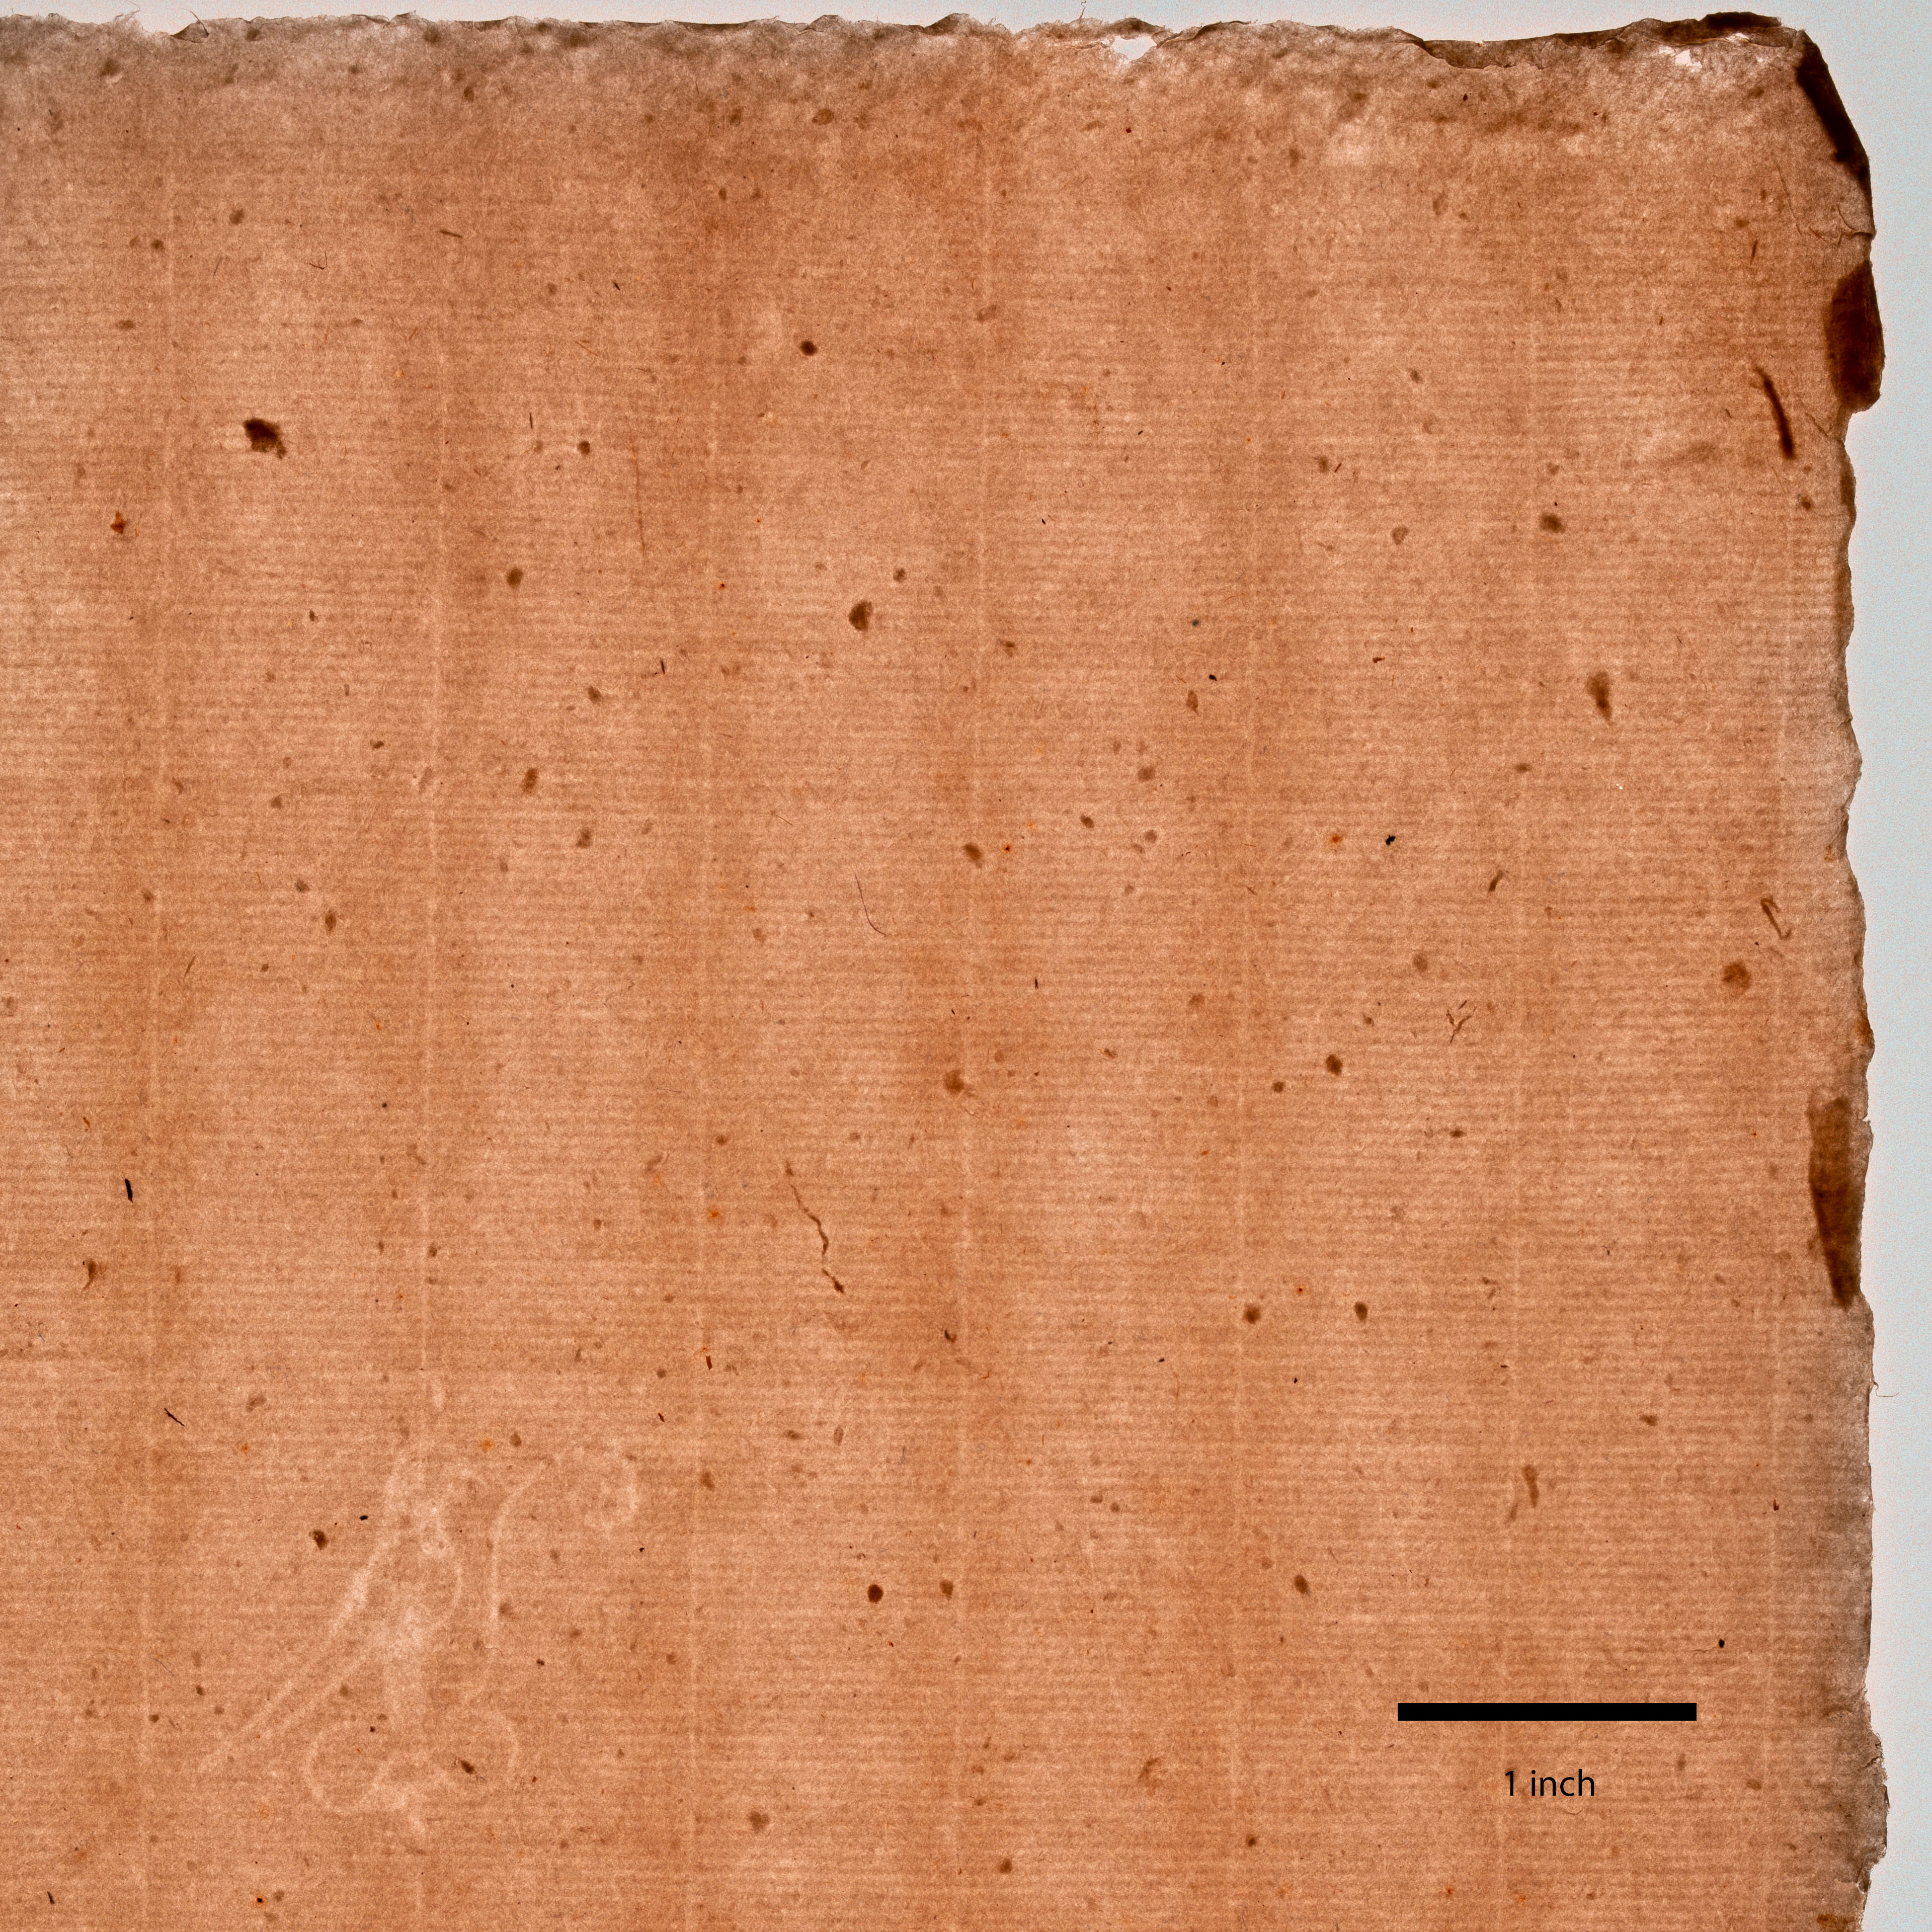 A light brown sheet with a regular grid pattern shows a more irregular edge, with areas of various thickness and multiple inclusions. A bird watermark is at lower left, and a thick black line marks one inch at bottom right.